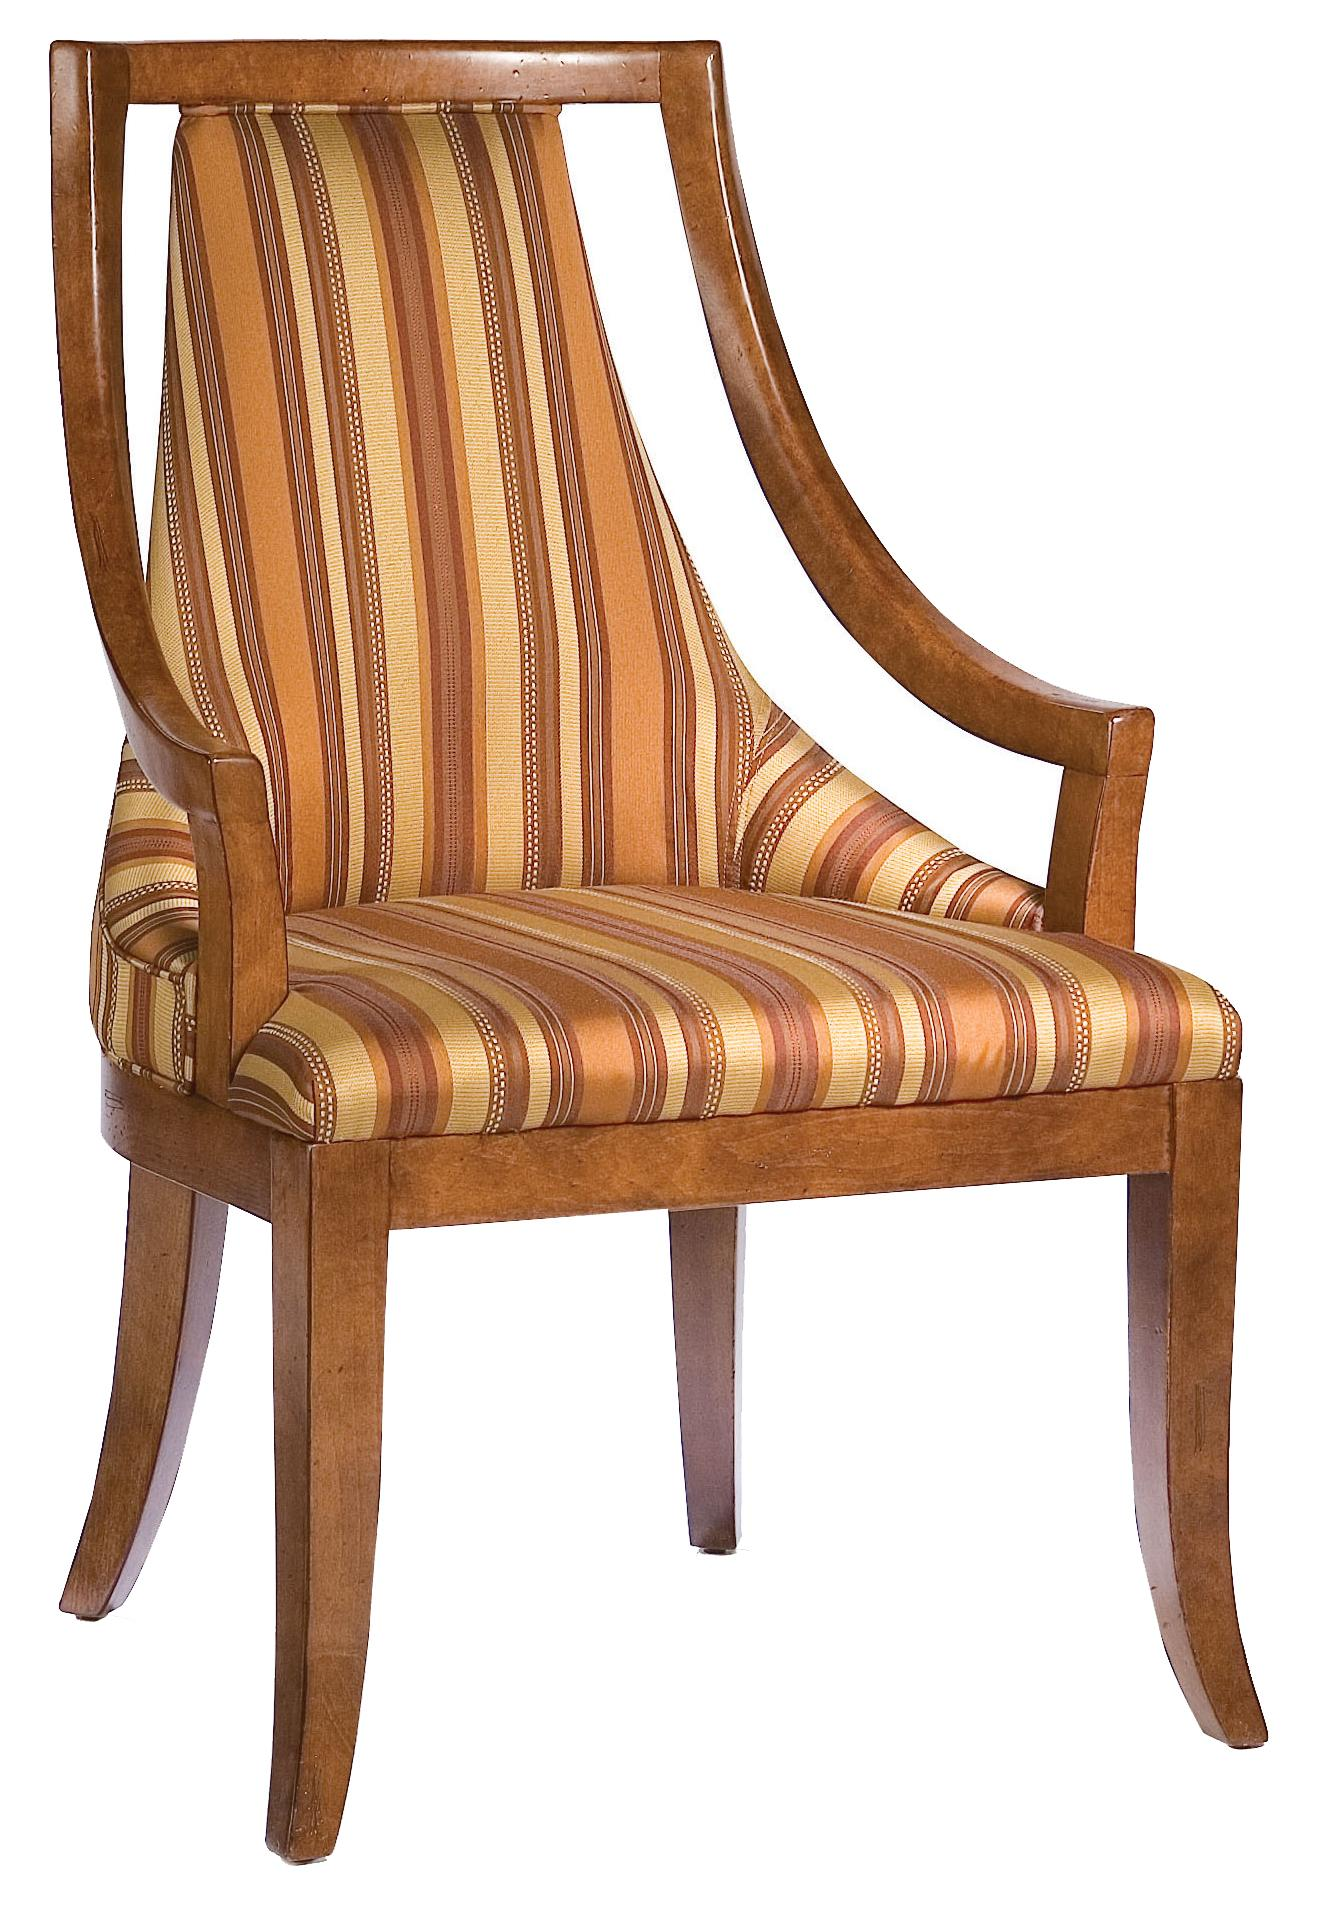 Fairfield Chairs Occassional Chair - Item Number: 5229-01